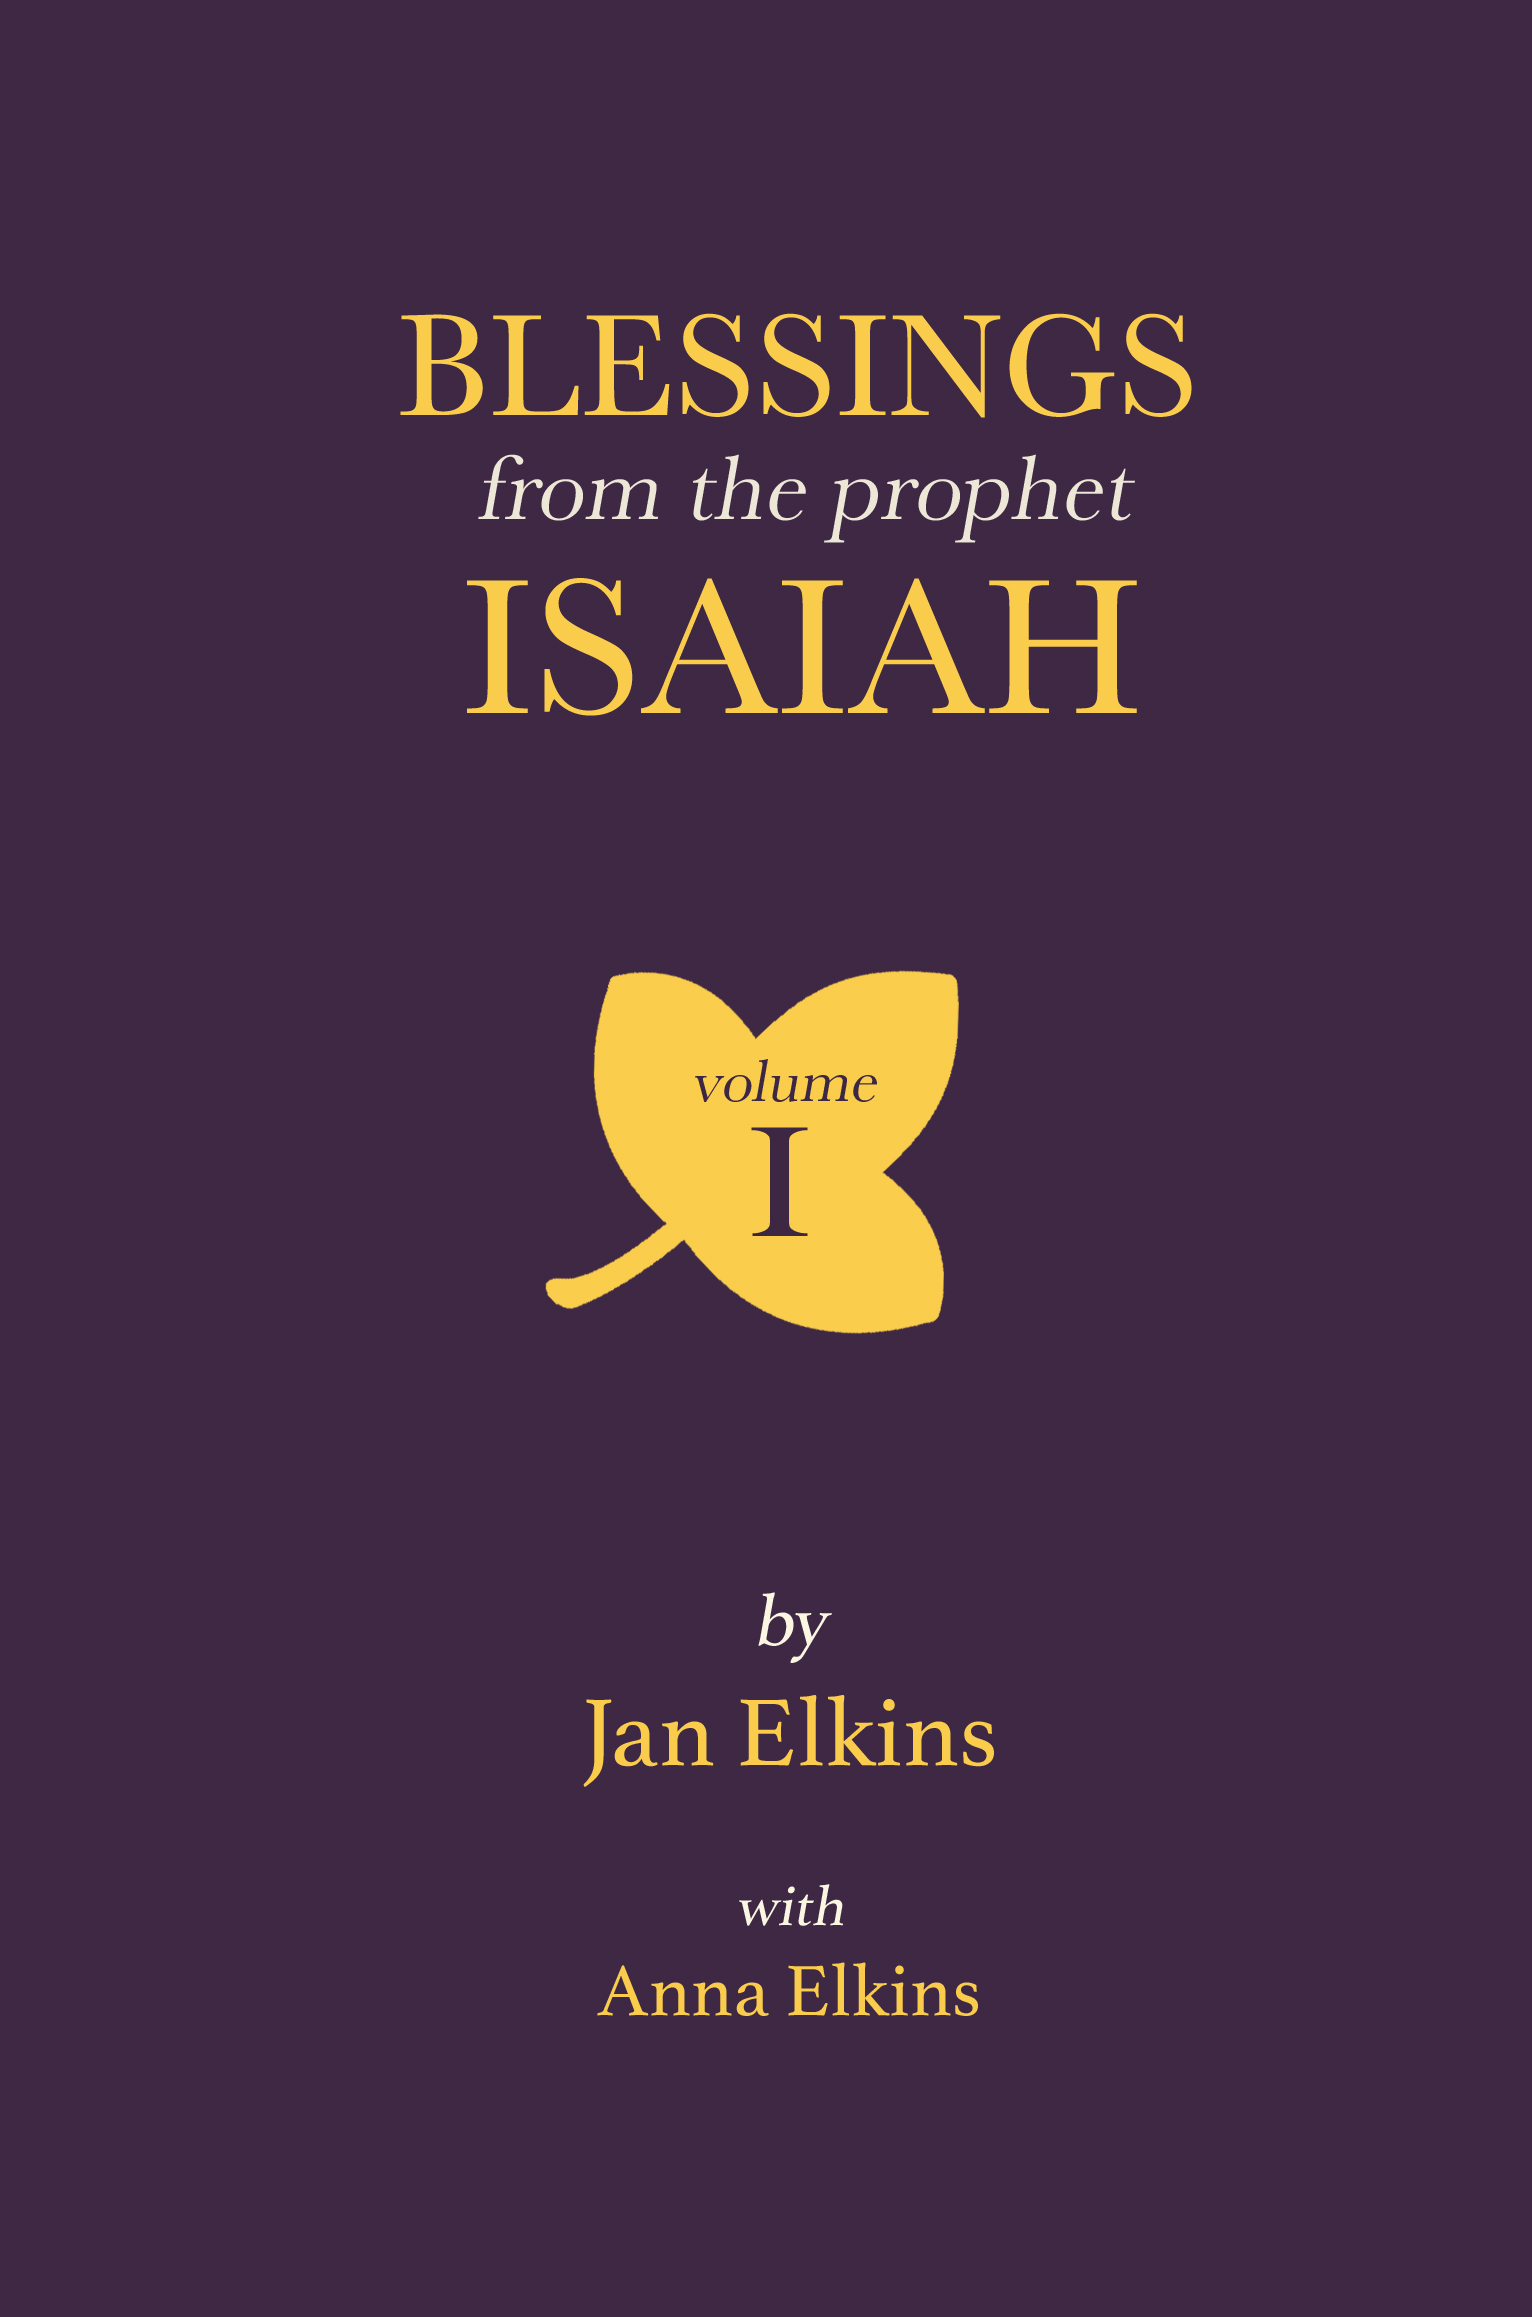 Blessings From the Prophet Isaiah: Vol. 1 - by Anna Elkins